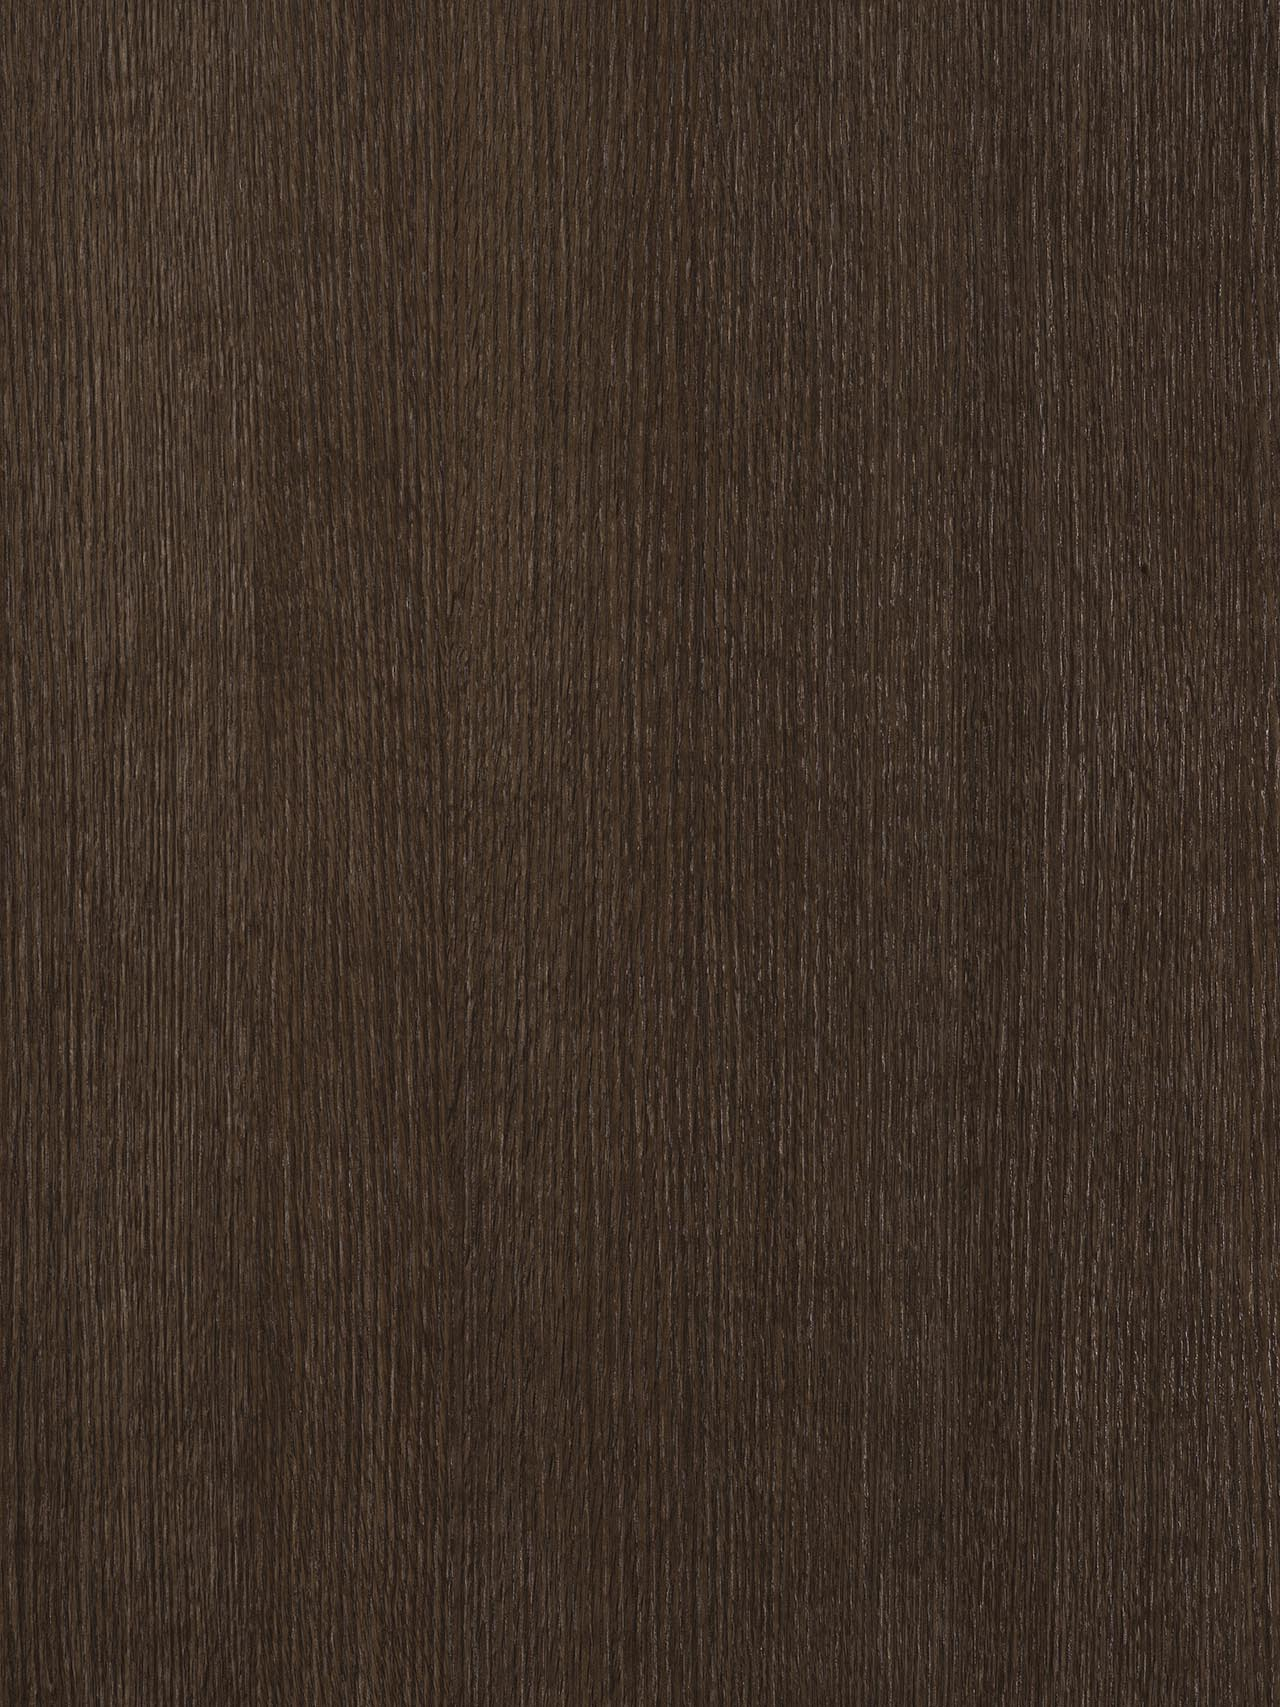 Cleaf for Texture rovere